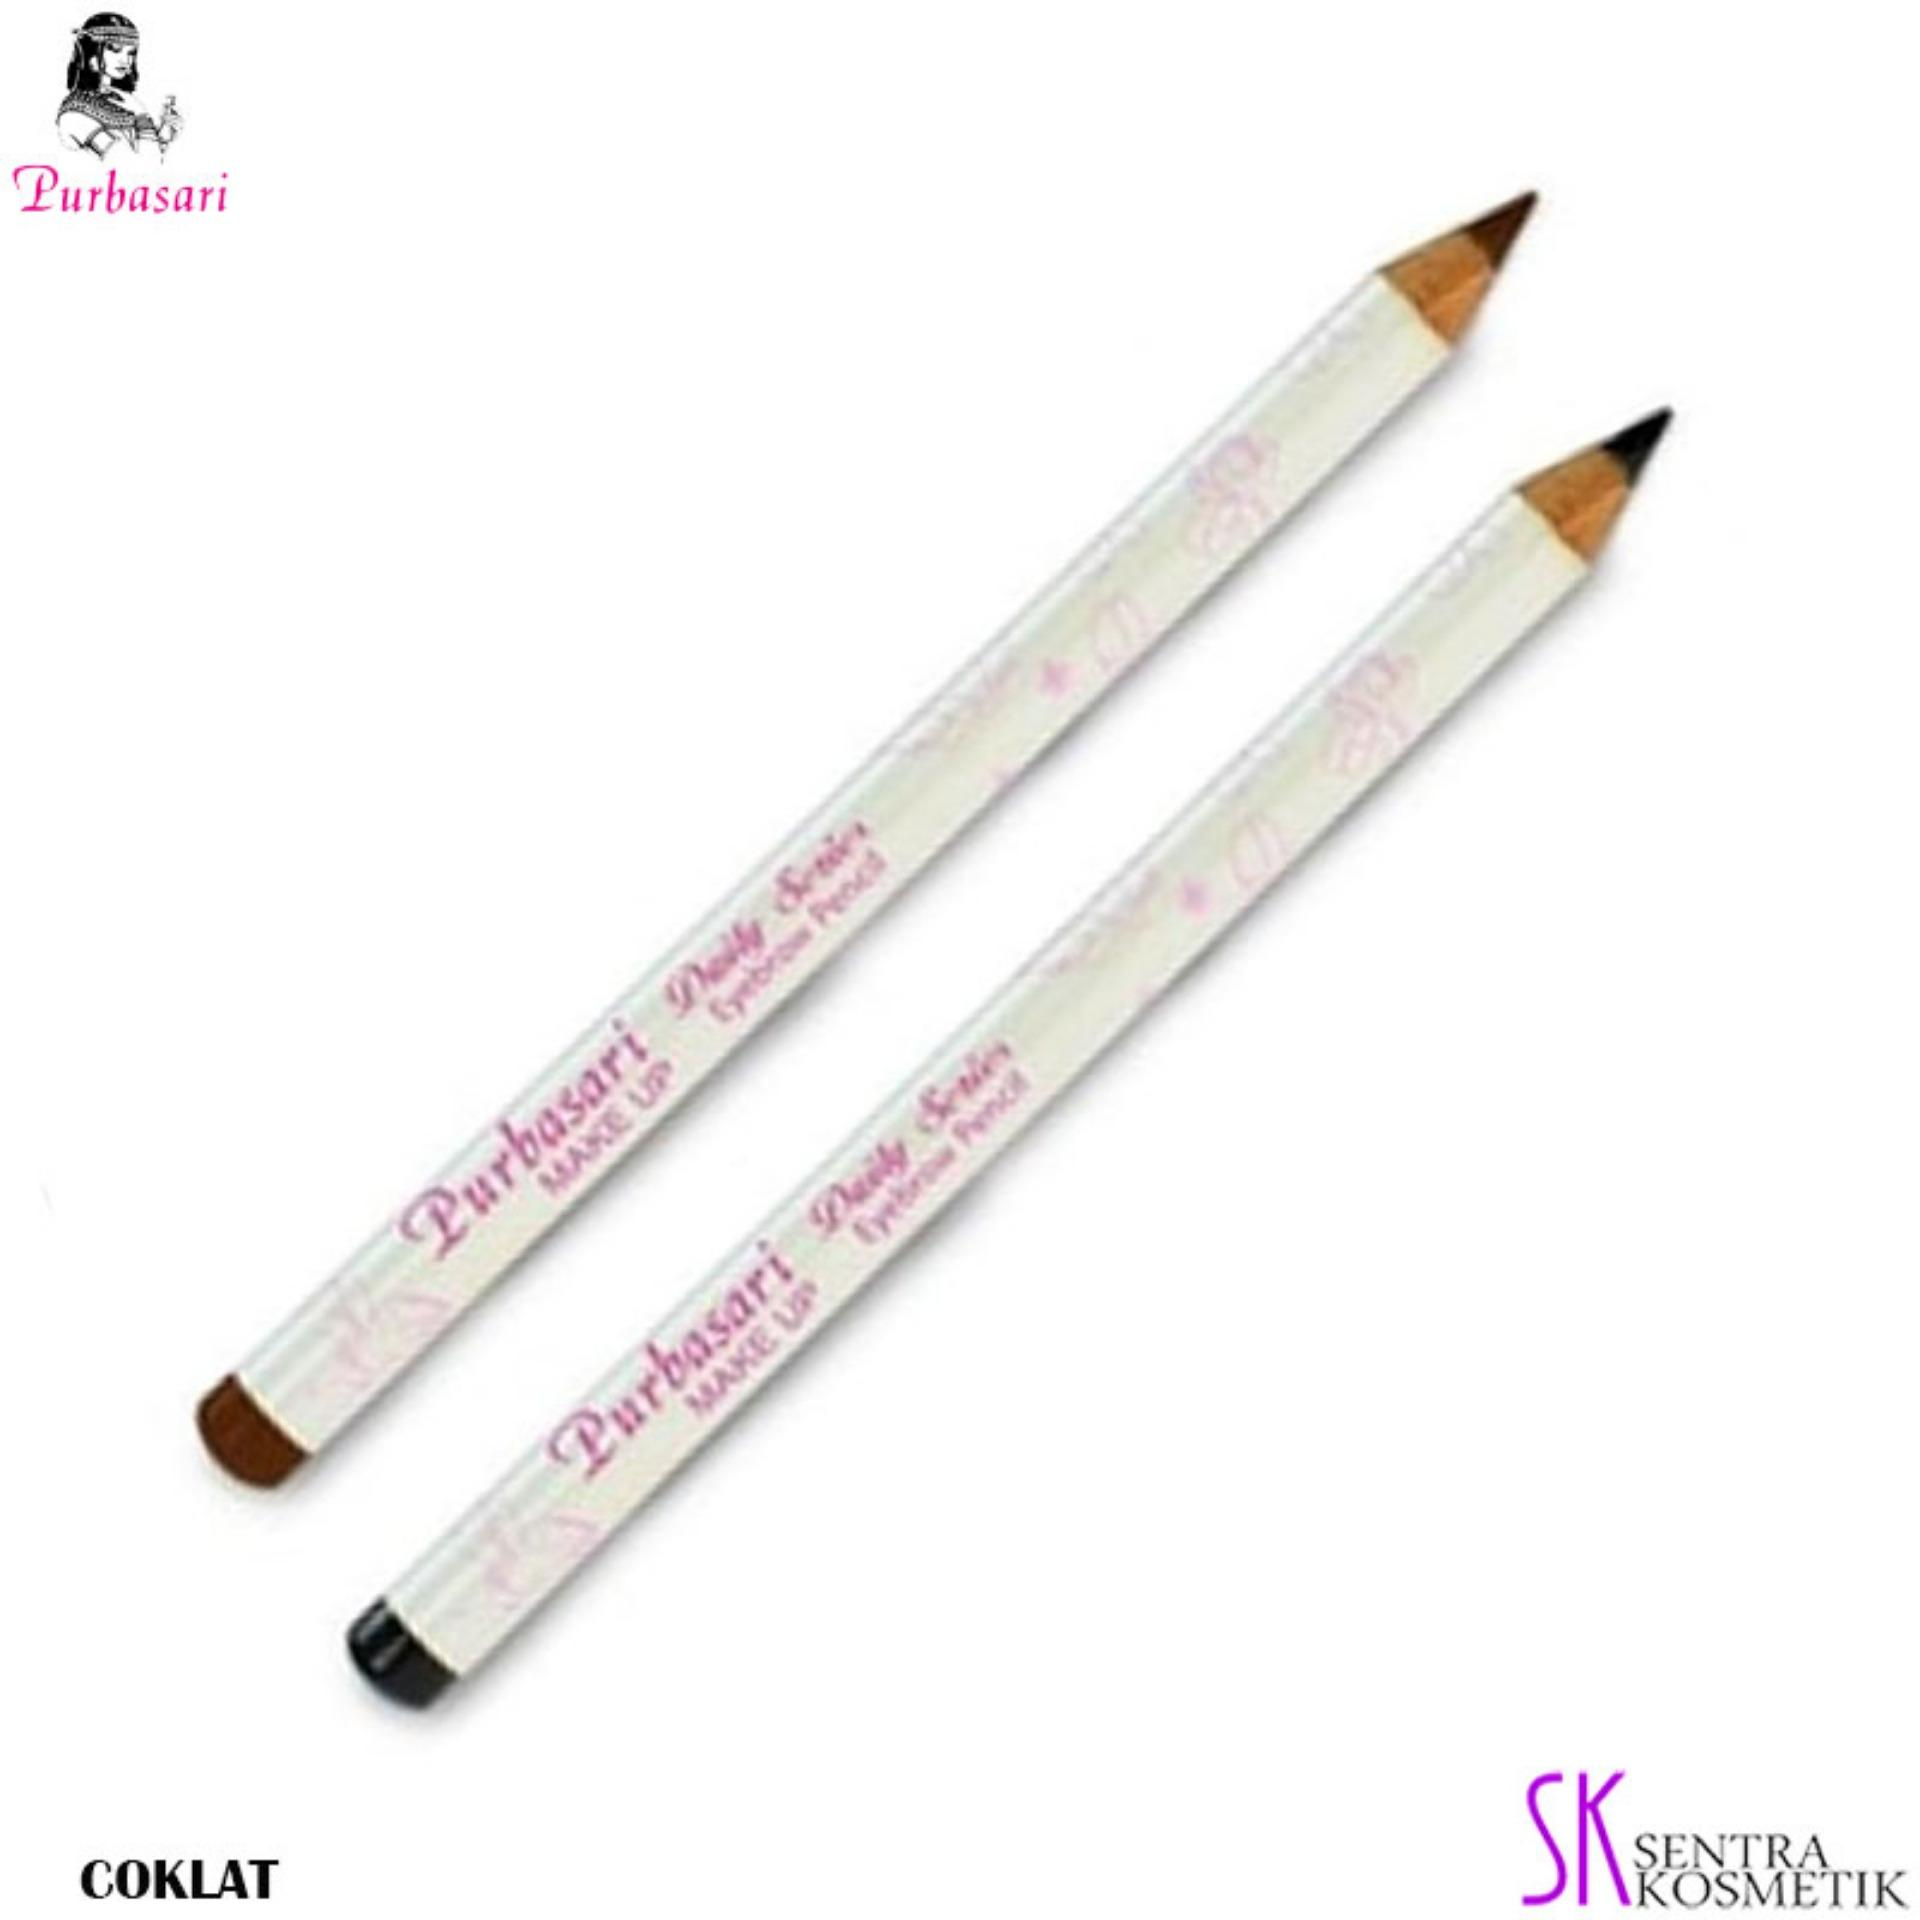 PURBASARI Daily Series EYEBROW Pencil  - COKLAT